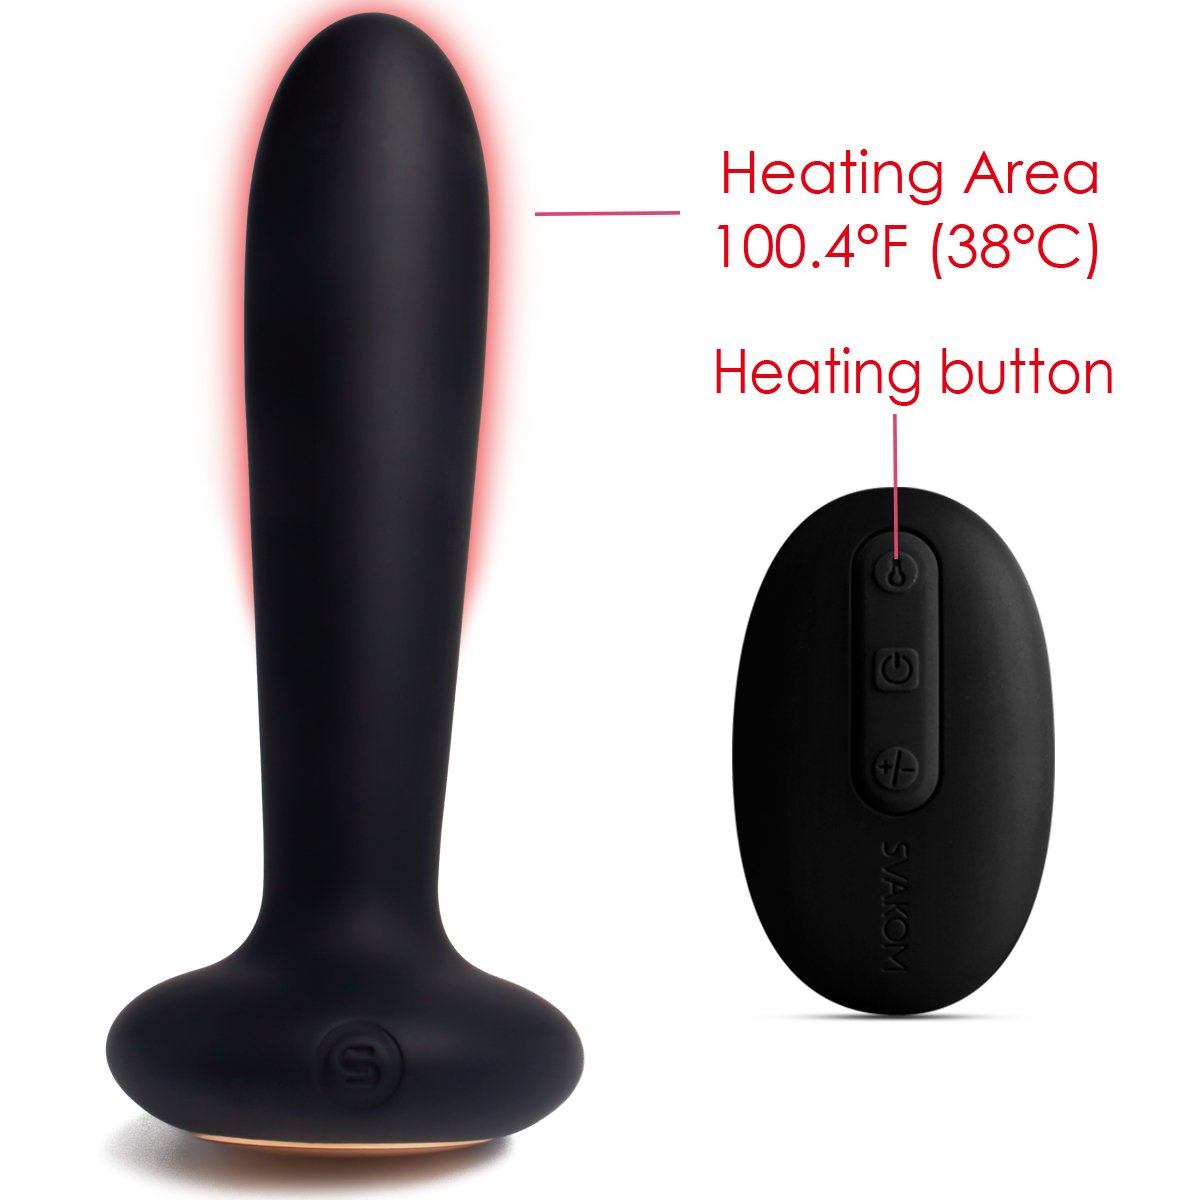 Heating Function Vibrating Anal Plug and Prostate Massager With Remote Control - Rechargeable & Waterproof - Body Safe Silicone Quiet yet Powerful Vibrator for Men Women or Couples (Black)